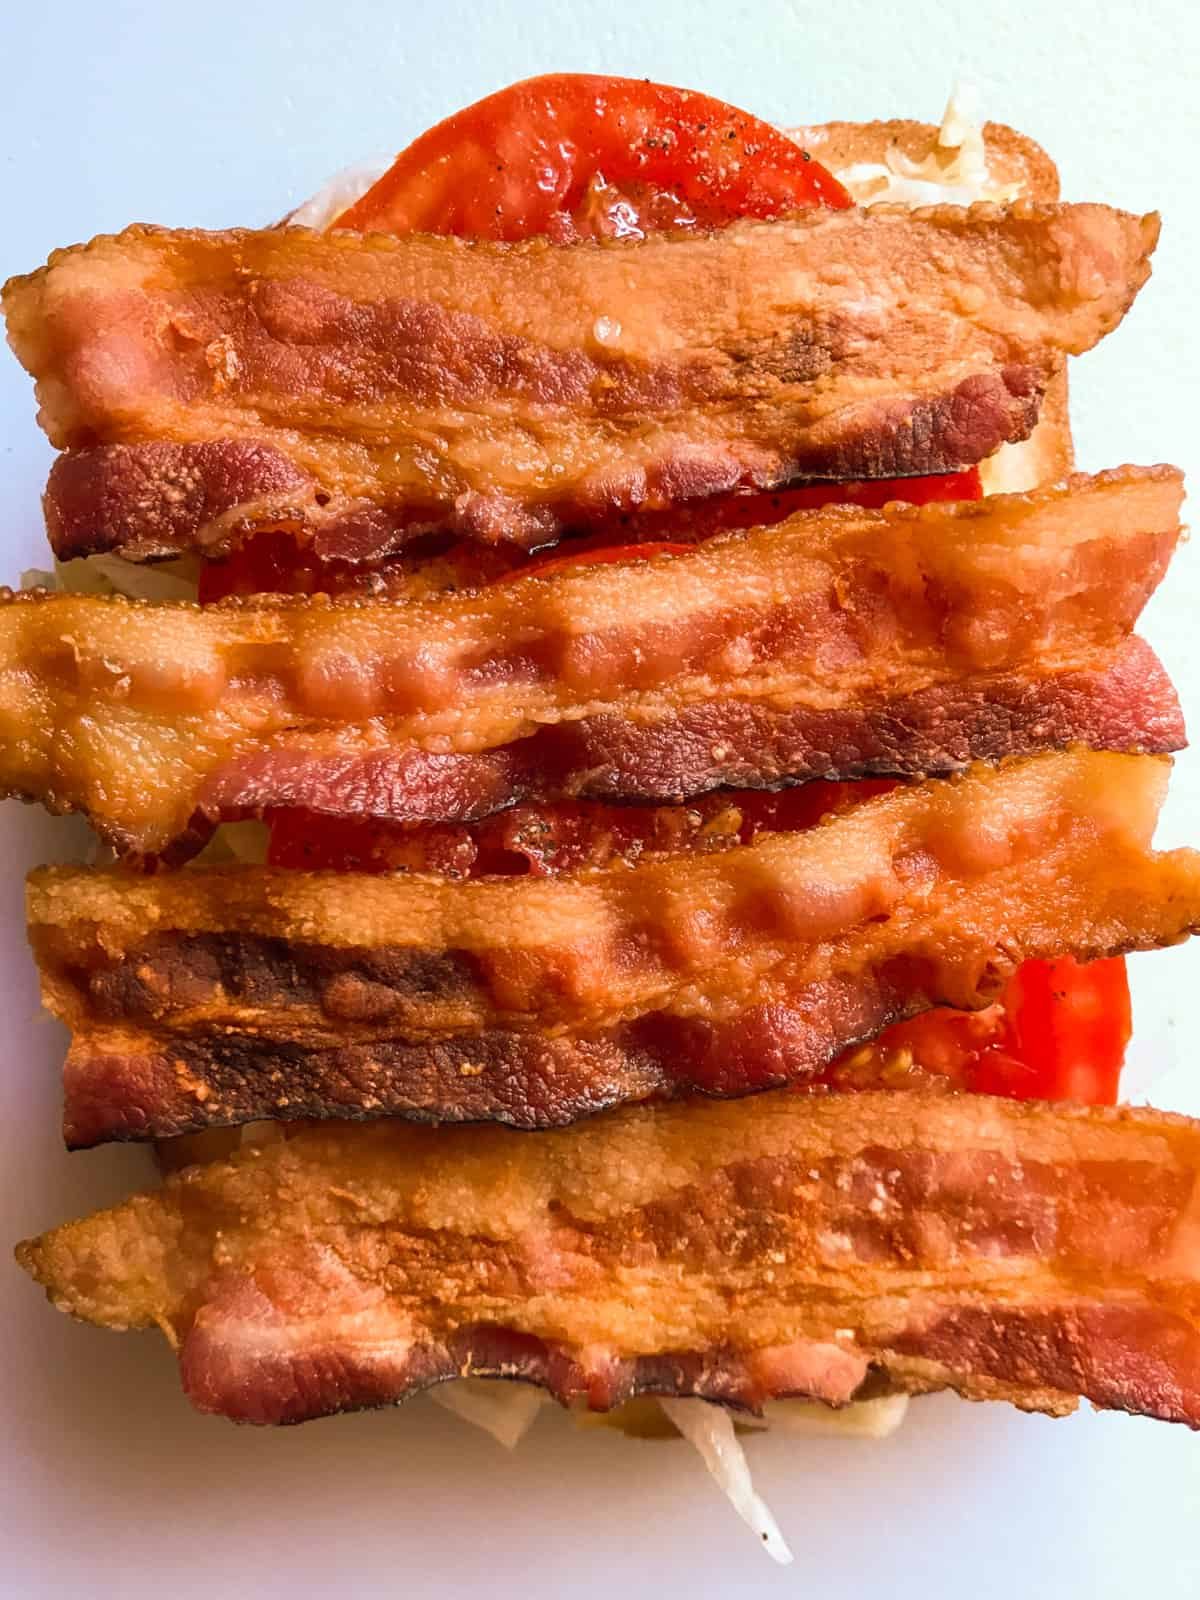 Four slices of bacon on BLT sandwich.